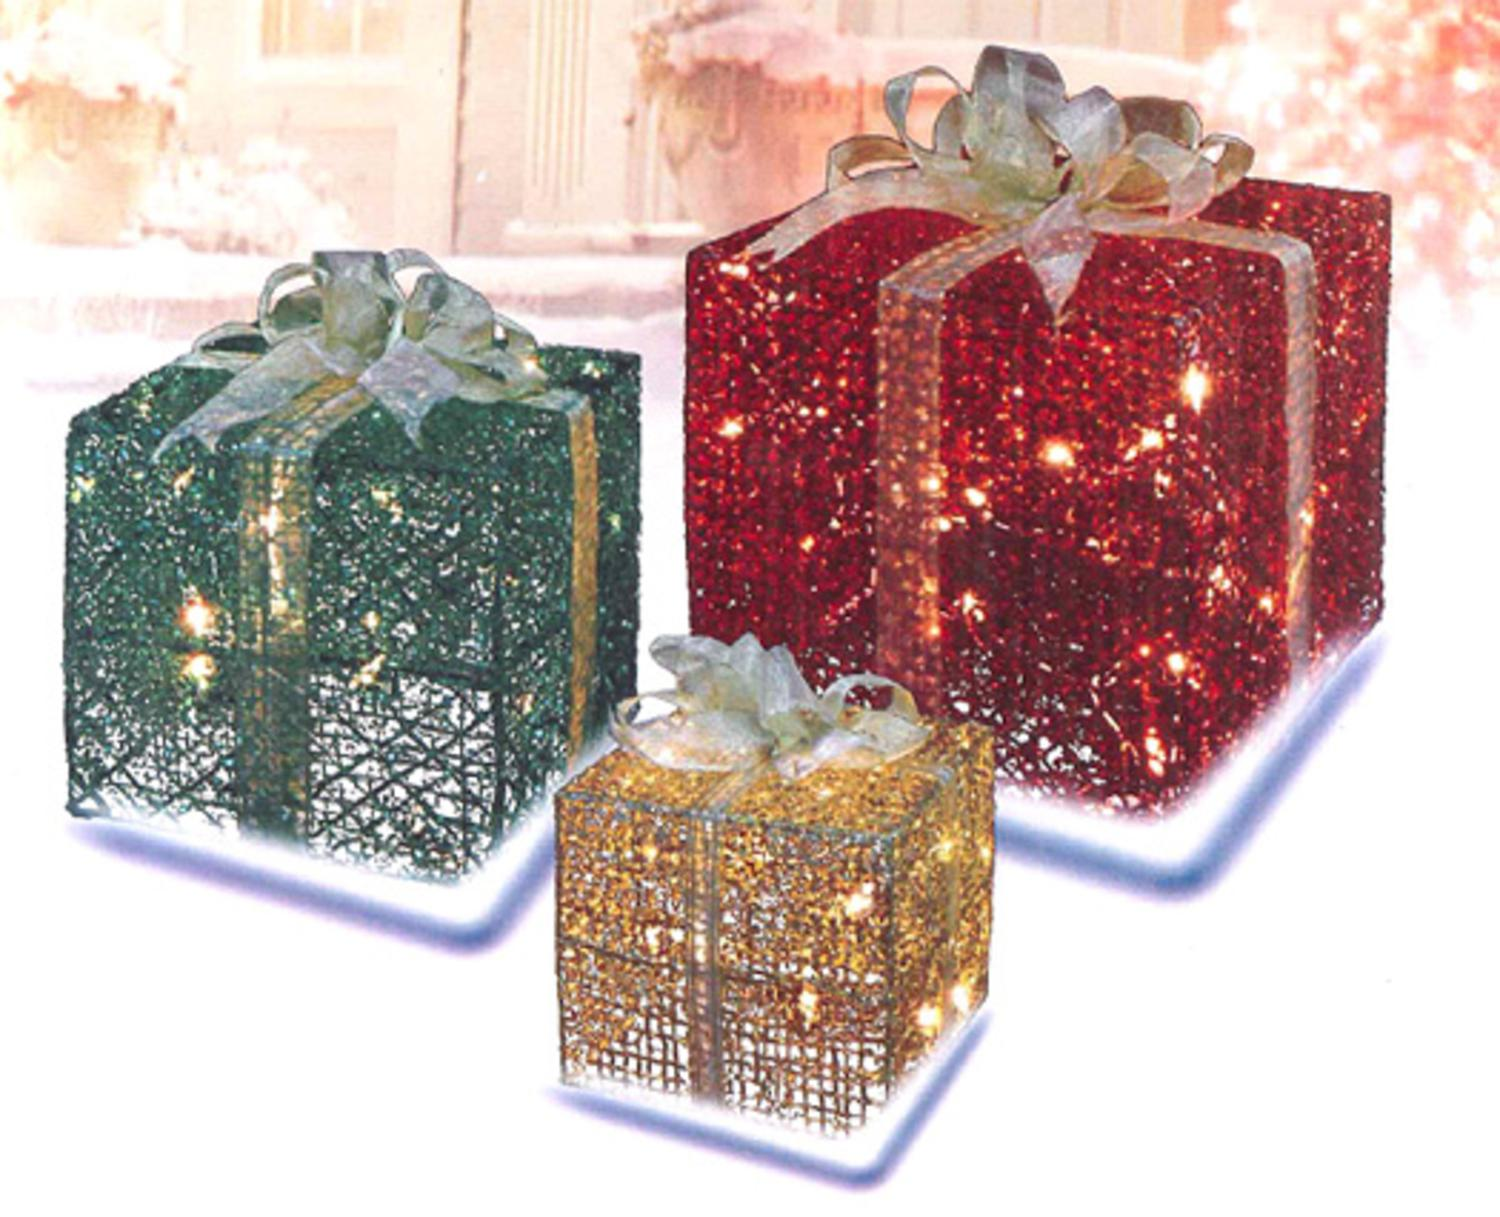 3 piece glittery red green gold gift box lighted christmas yard art set walmartcom - Decorative Christmas Boxes With Lights